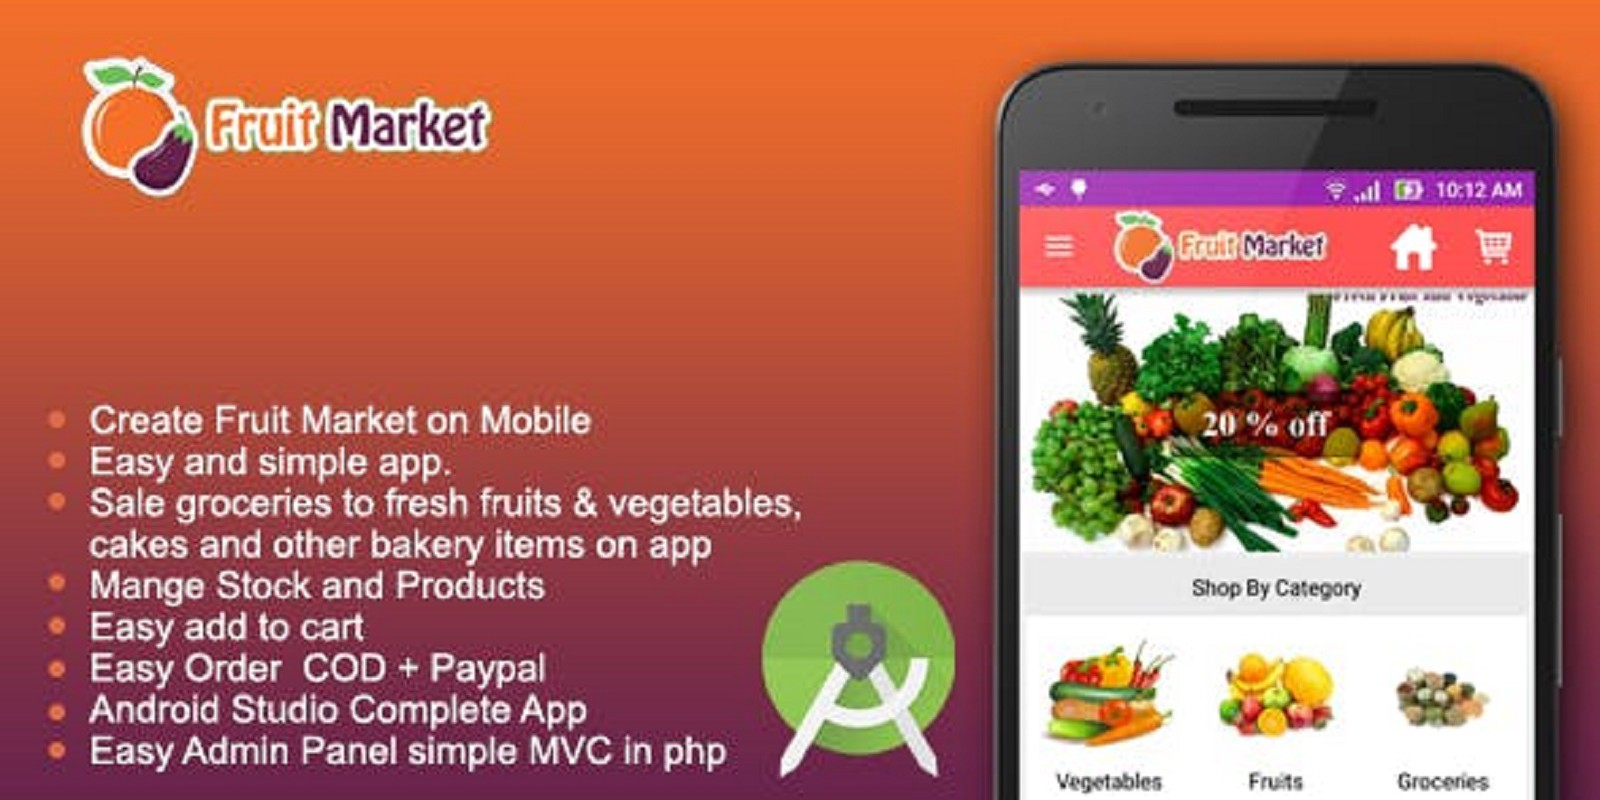 Fruit Market - Android Source Code